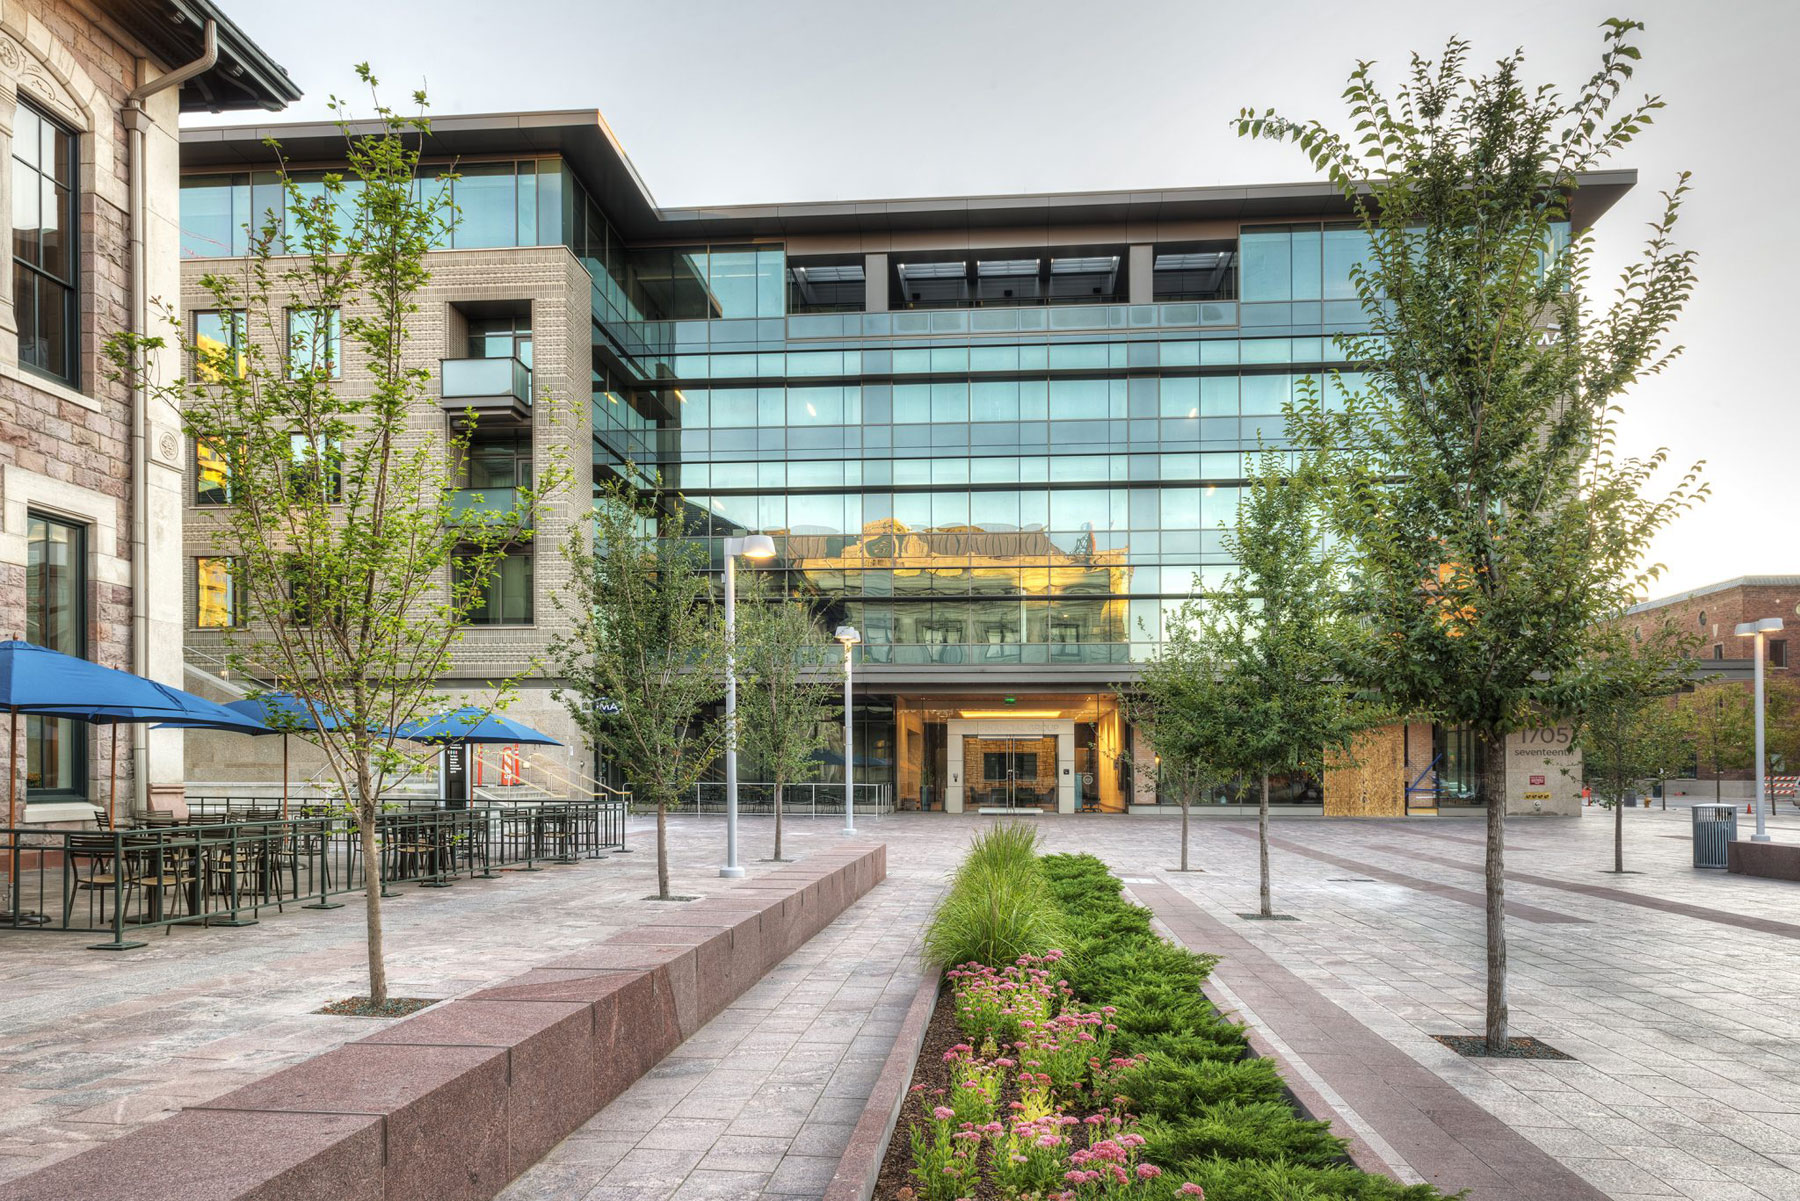 5 Story Office Building and 3 levels of underground parking – Denver, Colorado